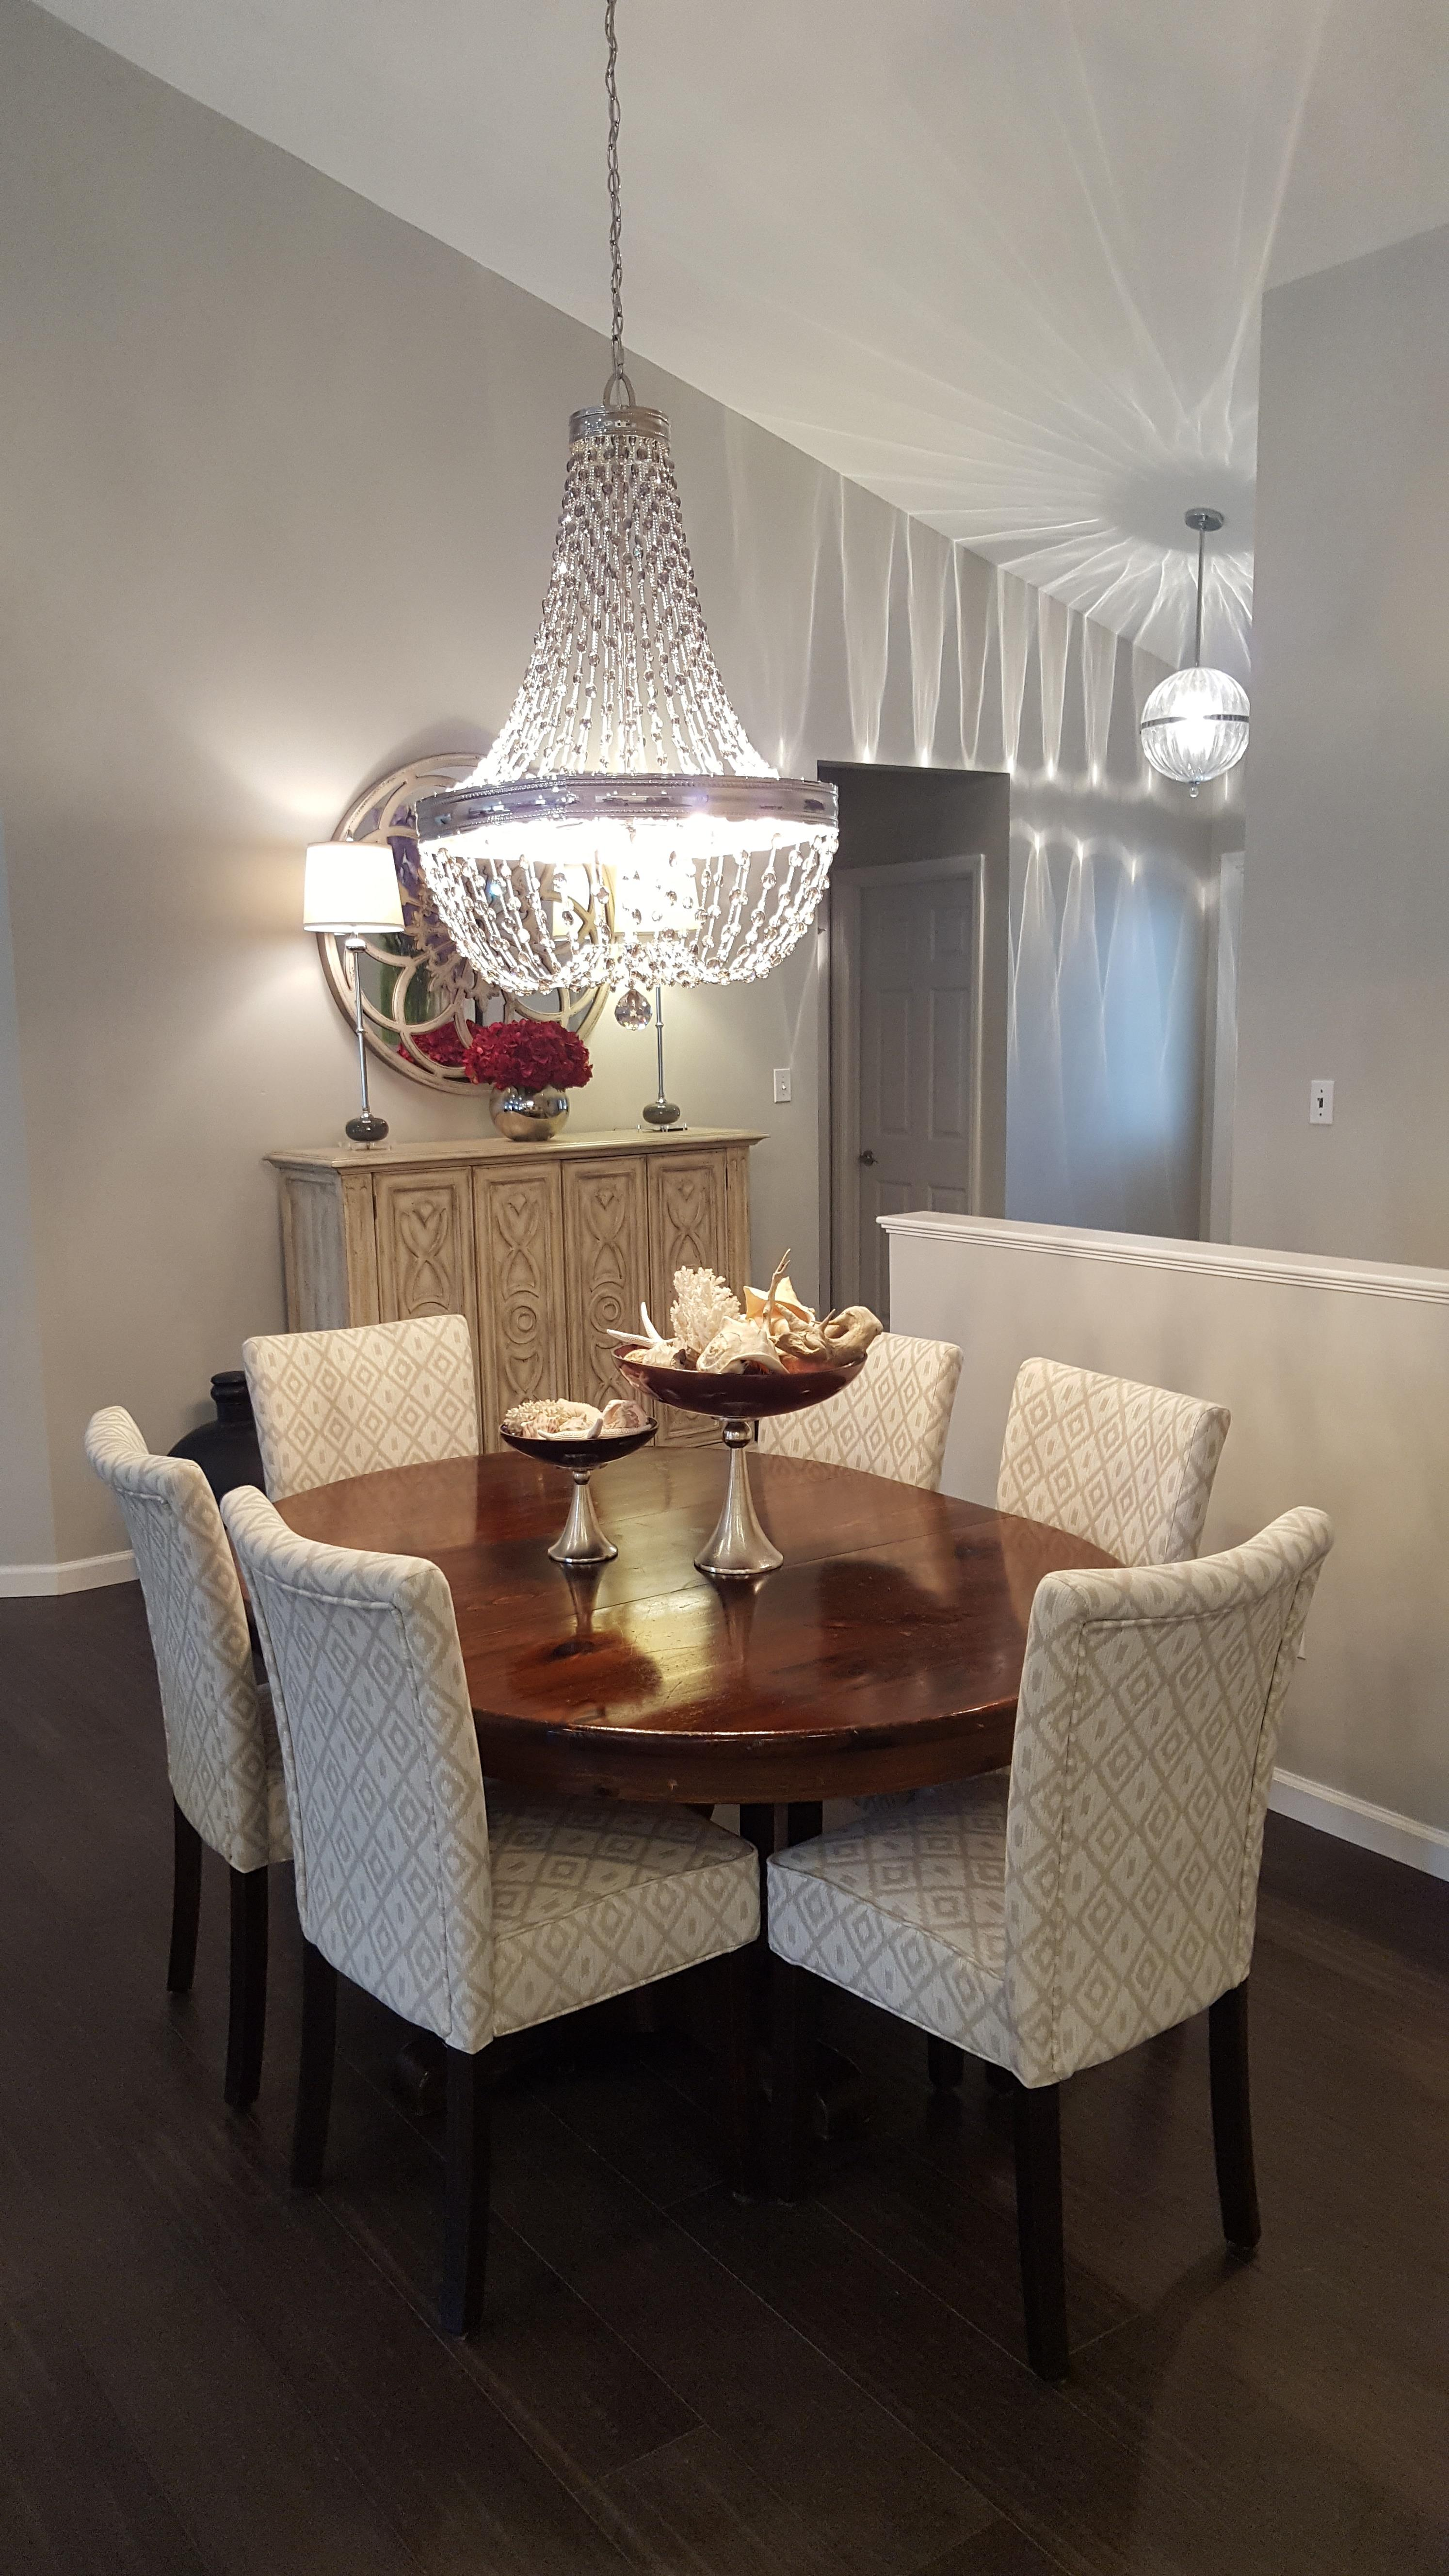 Condo Remodel Showcase: Dining Room   Earth City, MO